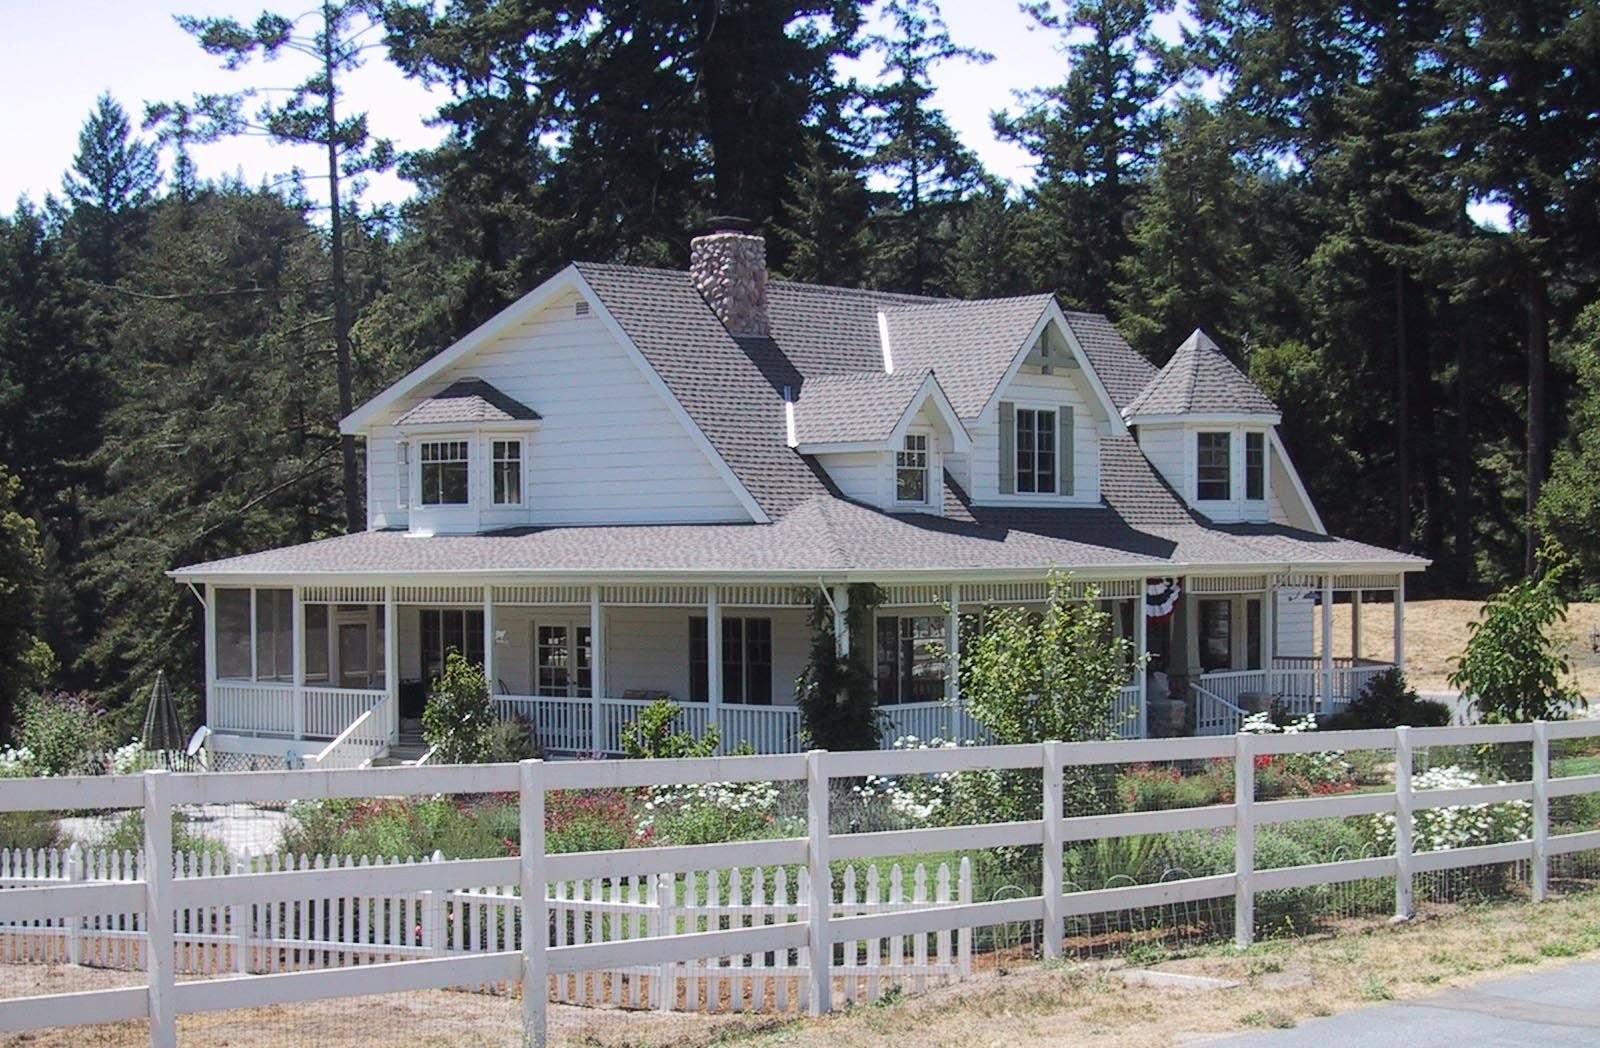 Excellent Country Home Porch With Wrap Around Porch By Someonespecialkim Jpg 1600 1048 Porch House Plans Ranch Style House Plans Basement House Plans